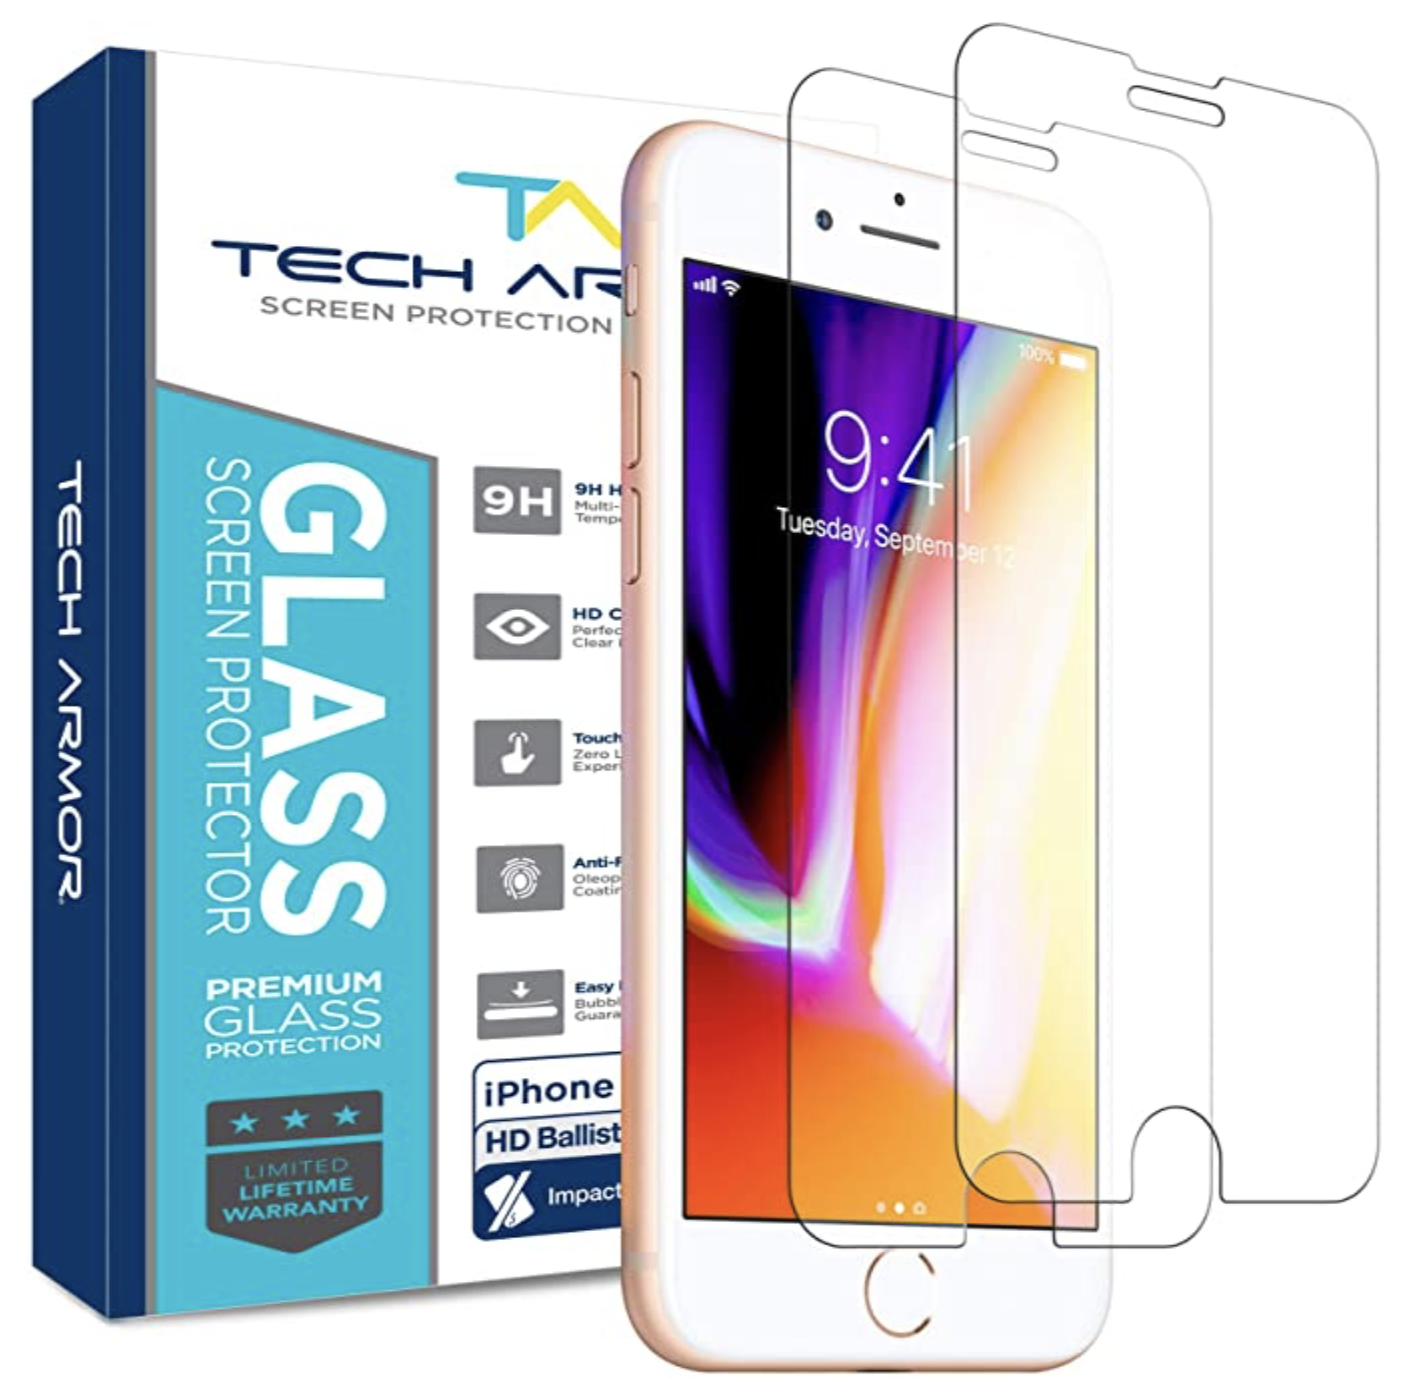 Tech Armor ELITE HD Clear Screen Protector for iPhone 7 - 2pk at Small Dog Electronics